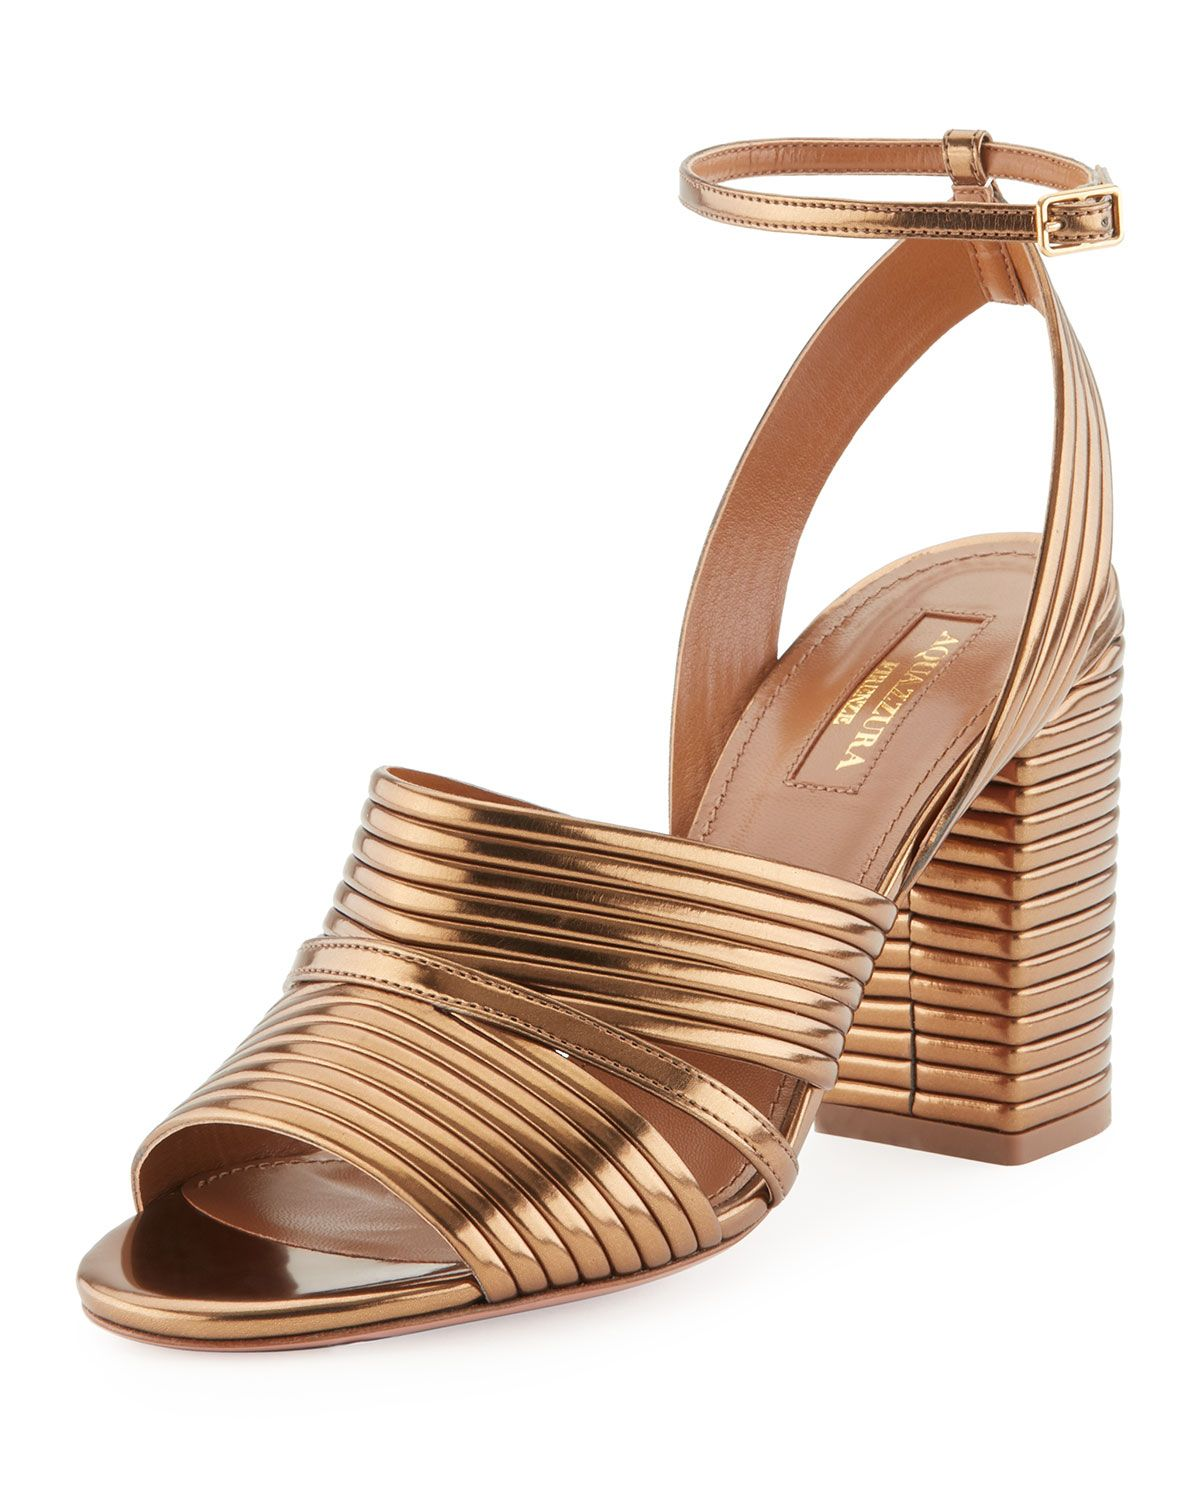 29b180c222c Aquazzura Sundance Metallic Leather Block-Heel Sandals